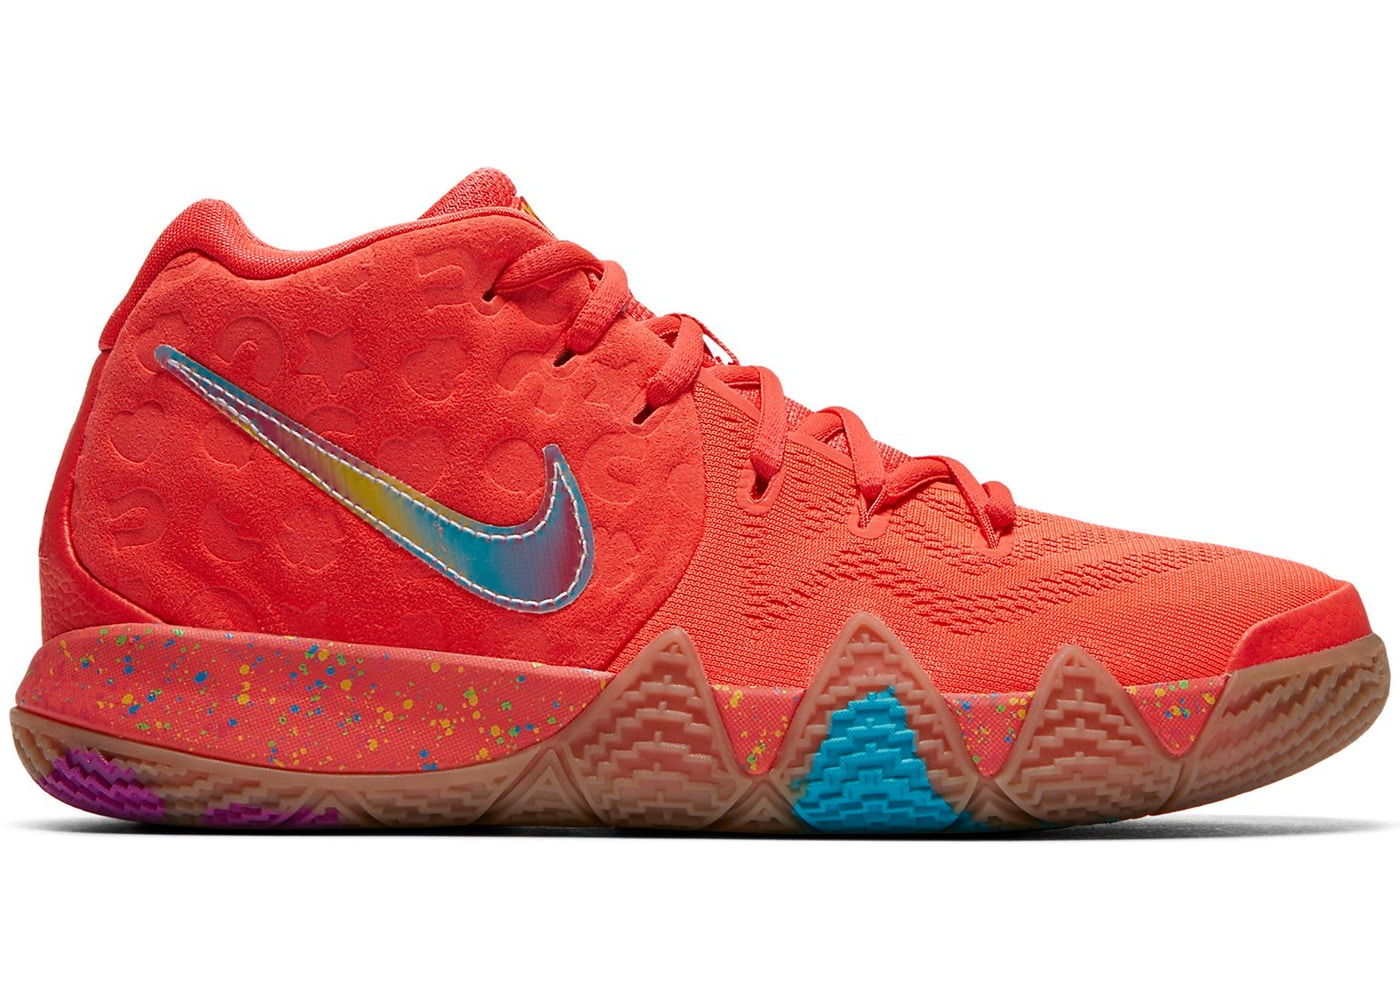 online store 7bfc6 4477e Kyrie 4 Lucky Charms (GS)